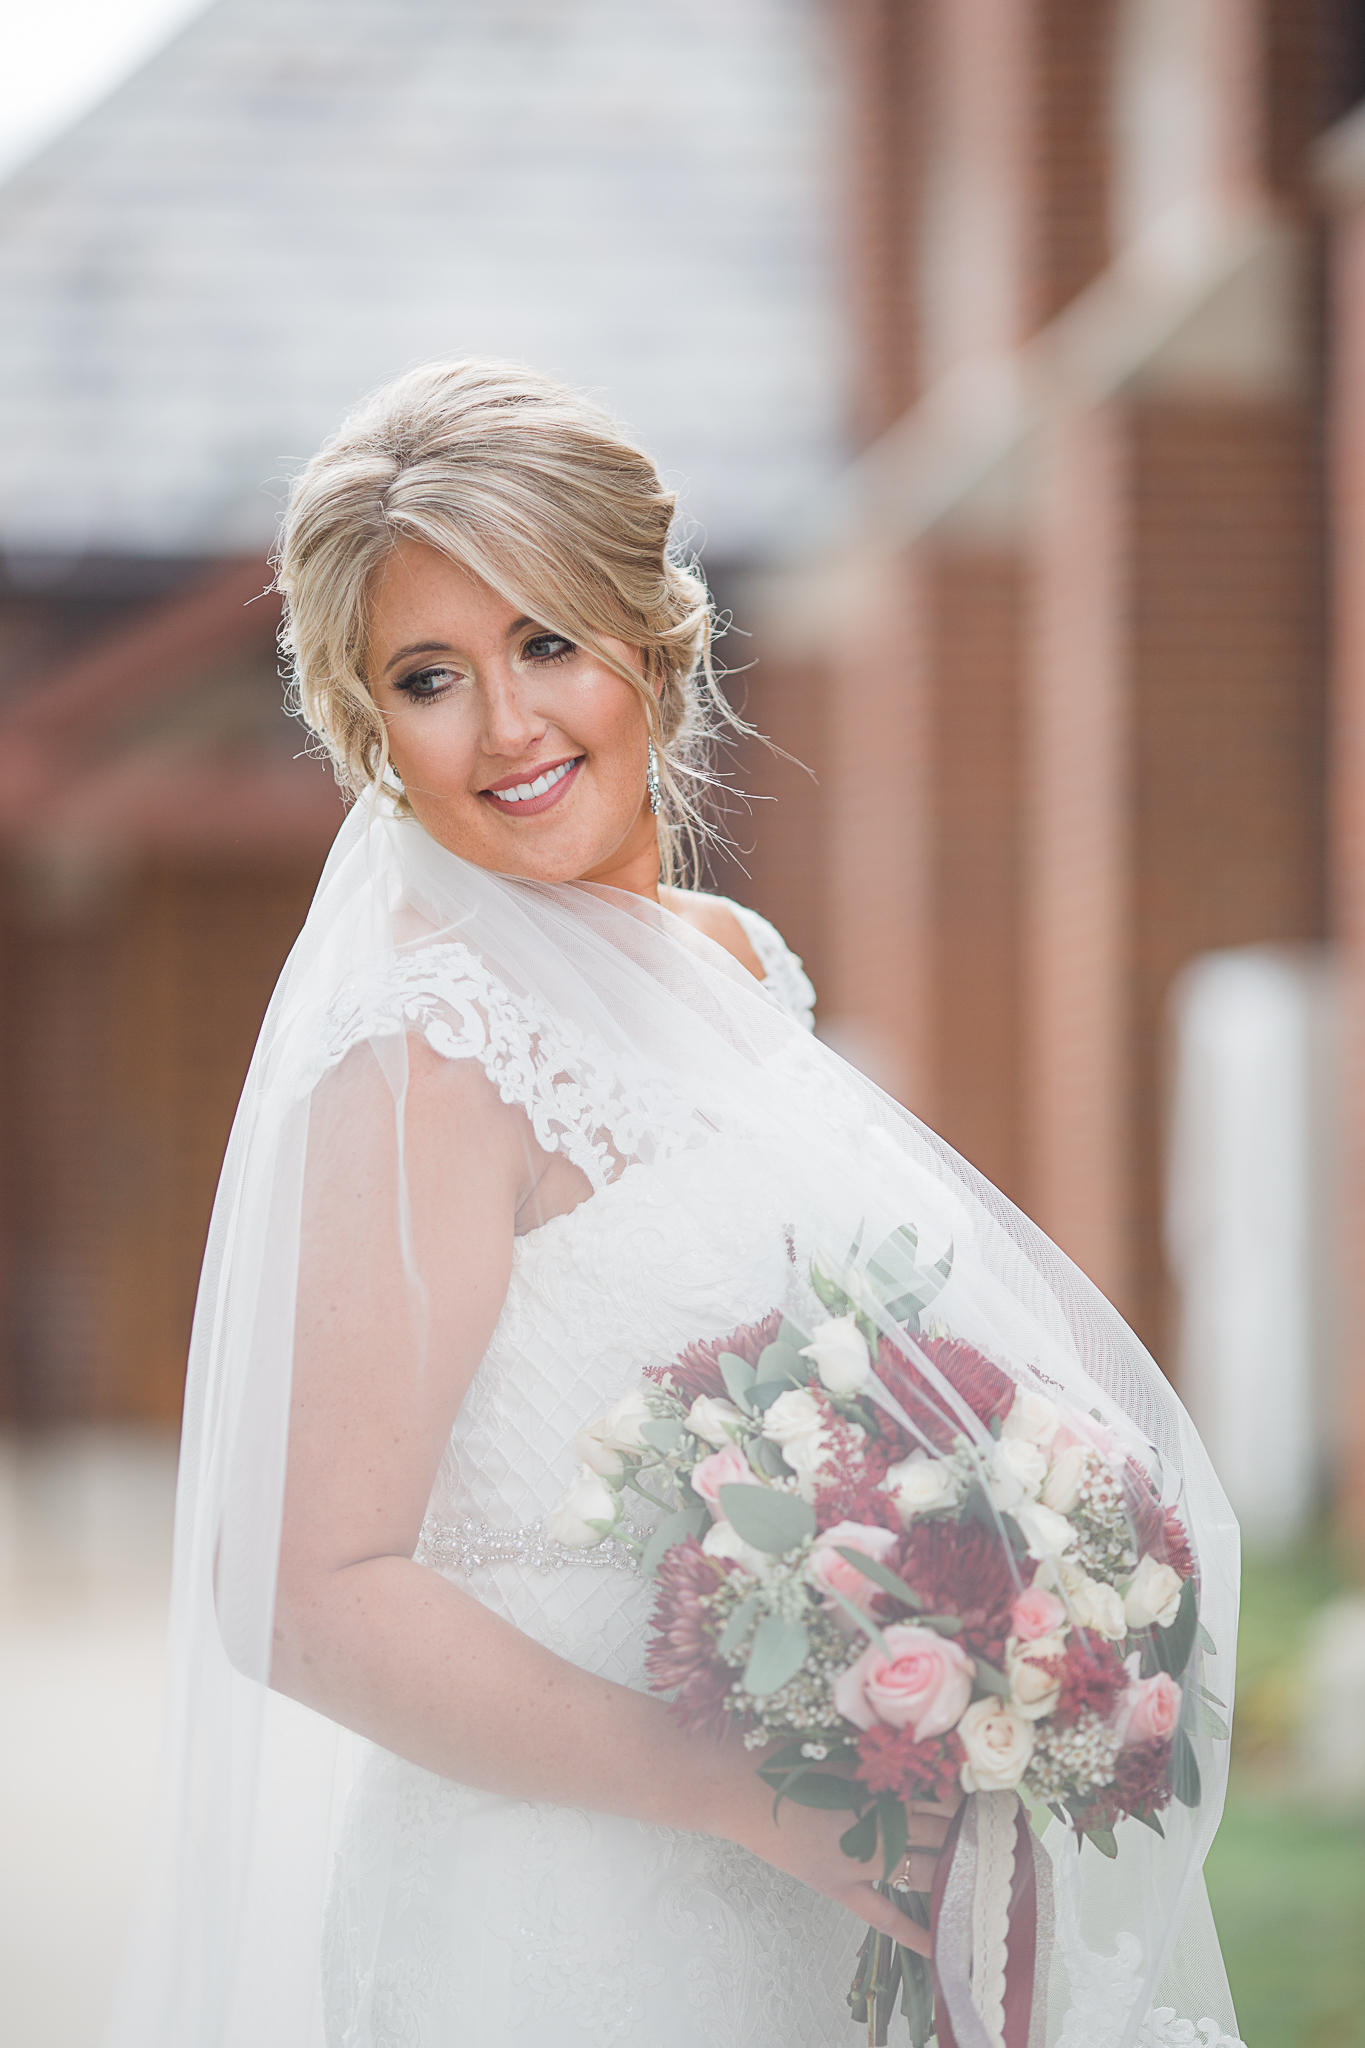 Bride posing with flowers and veil